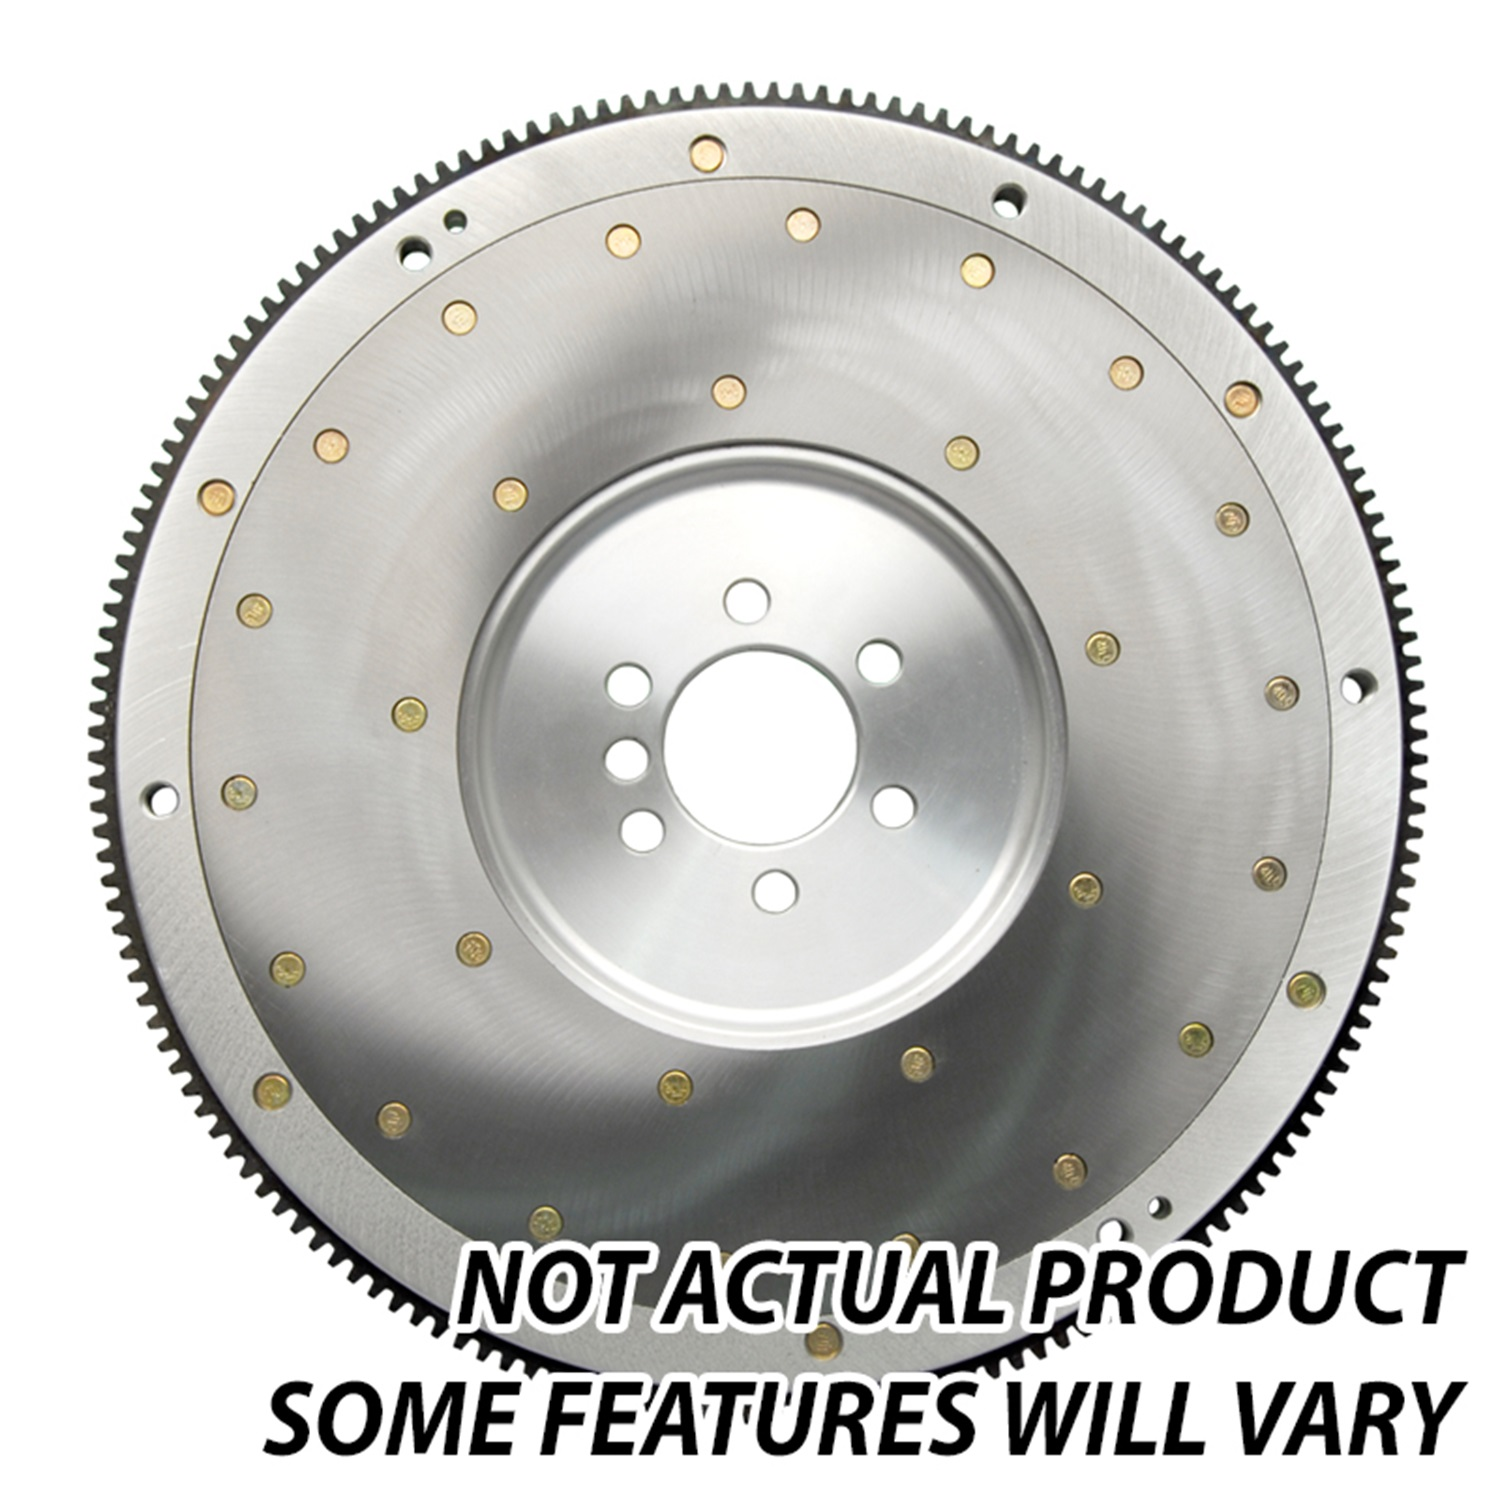 Centerforce 900230 Centerforce(R) Flywheels, Aluminum Centerforce(R) Flywheels, Aluminum